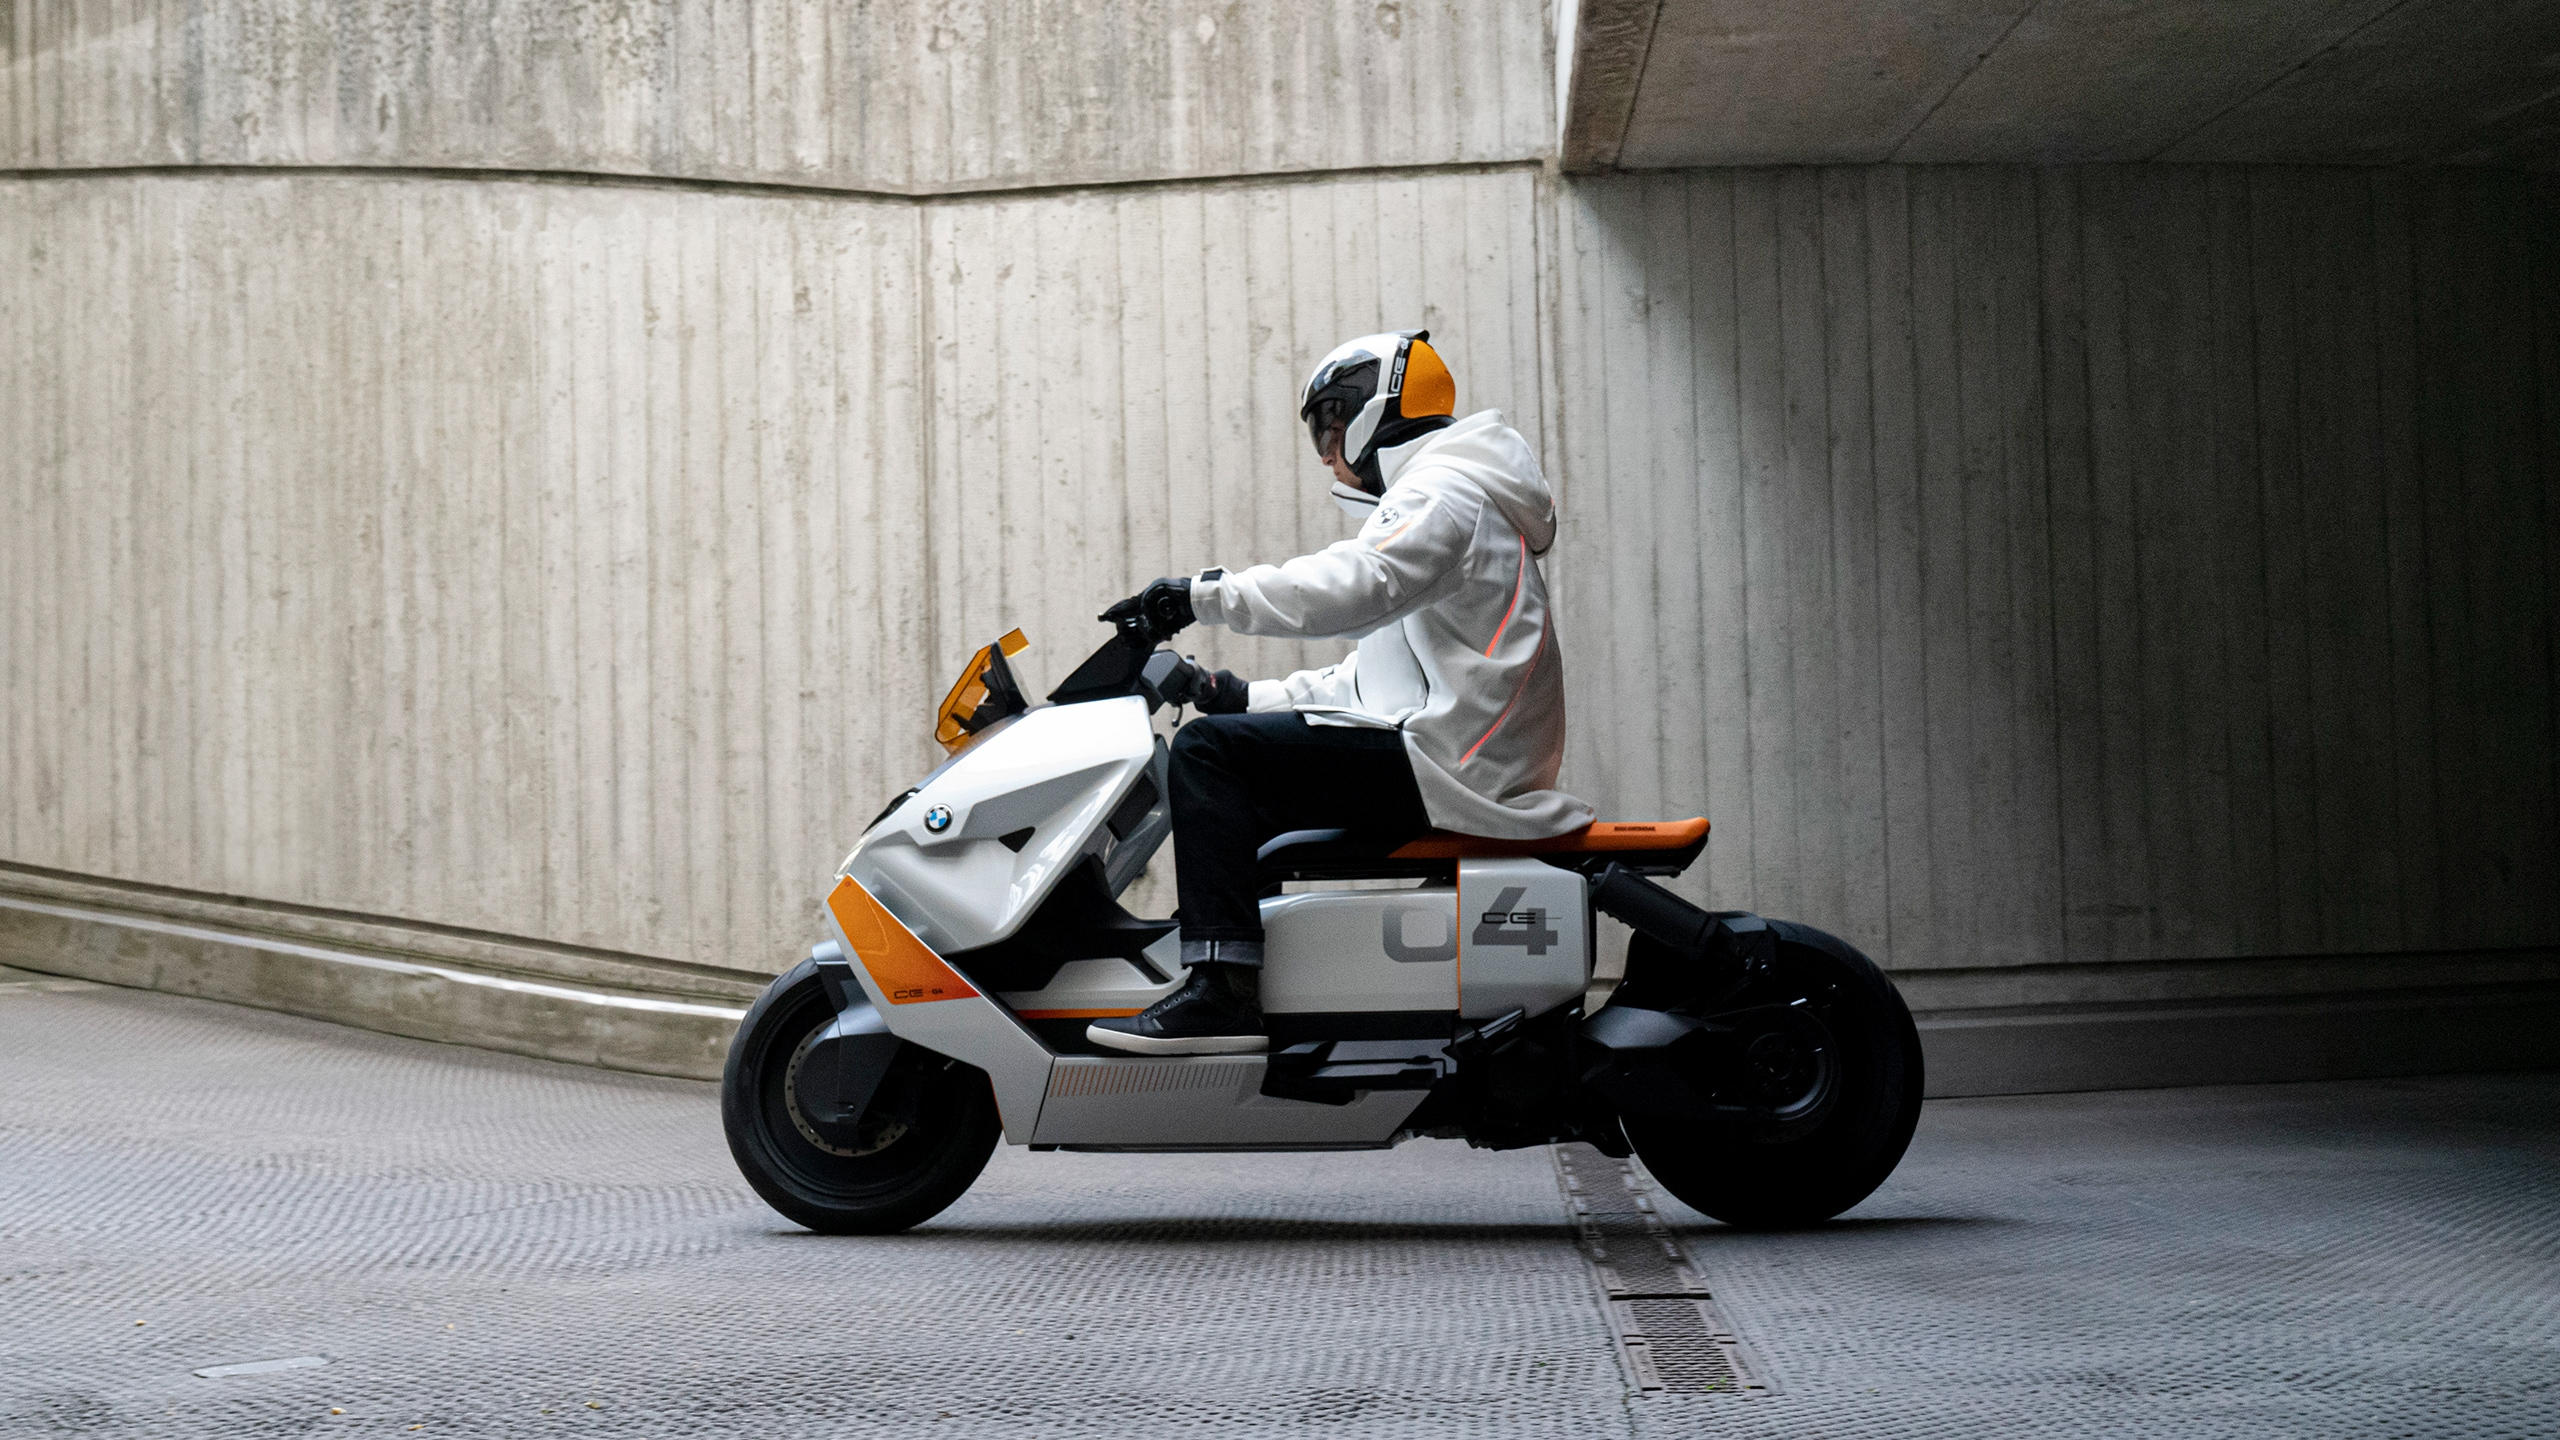 https://www.bmw-motorrad.fr/content/dam/bmwmotorradnsc/common/multiimages/images/experience/stories/urban_mobility/definition-ce-04/nsc-master-definition-ce-04_2560x1440.jpg.asset.1614612385484.jpg